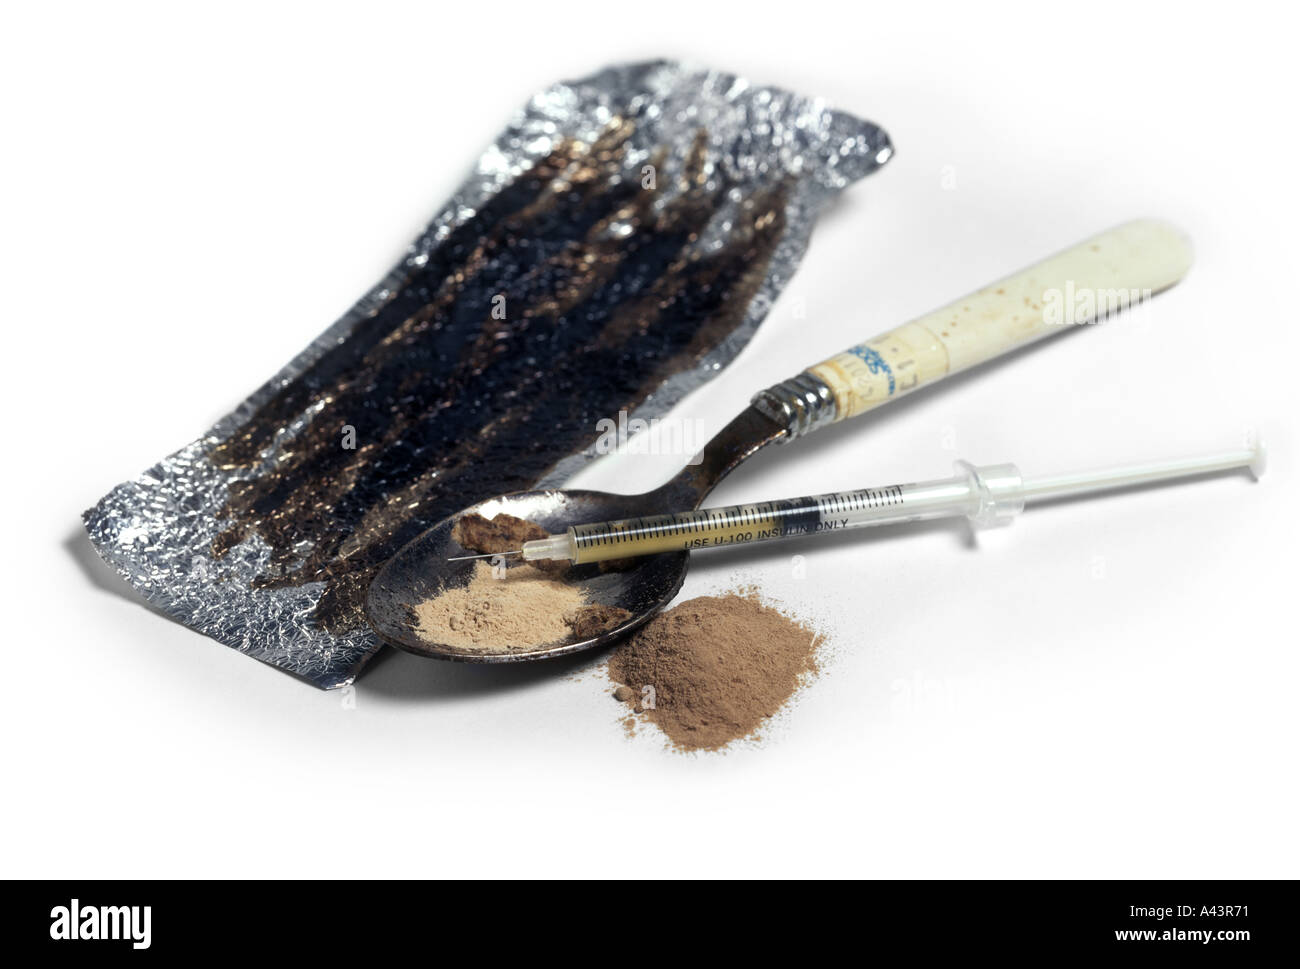 Heroin photographed on a white background showing the equipment necessary to prepare the powder for injection. - Stock Image